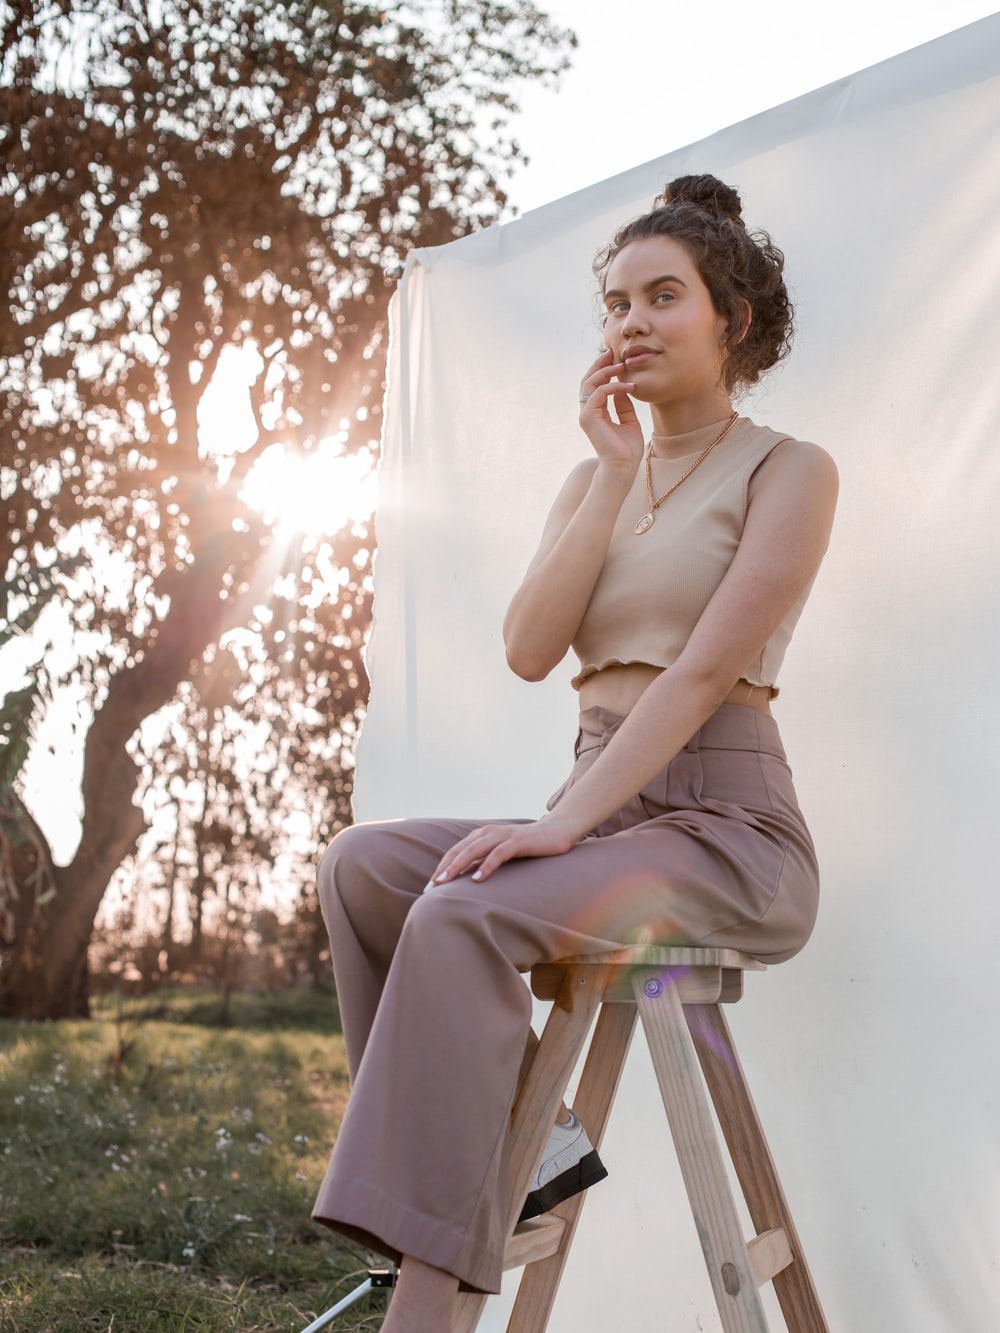 woman in white tank top sitting on brown wooden folding chair during daytime